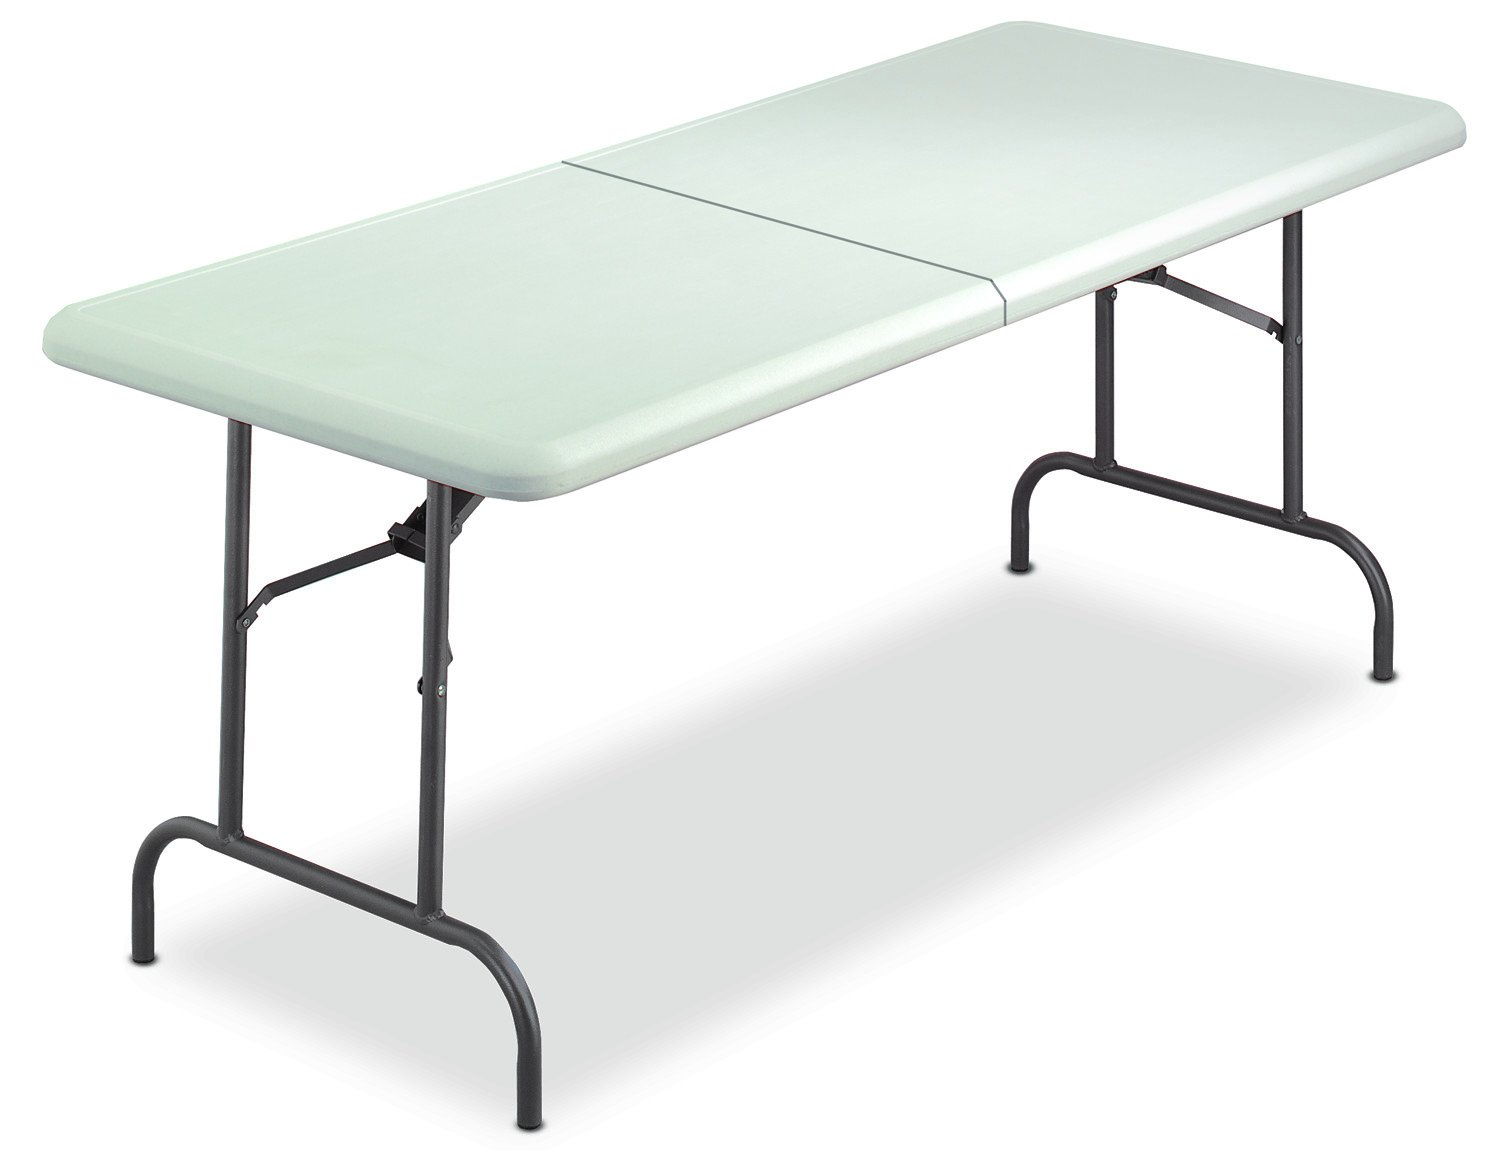 Iceberg 65453 IndestrucTable TOO Bi-Fold Folding Table, 30''x60'', Platinum (Made in USA)